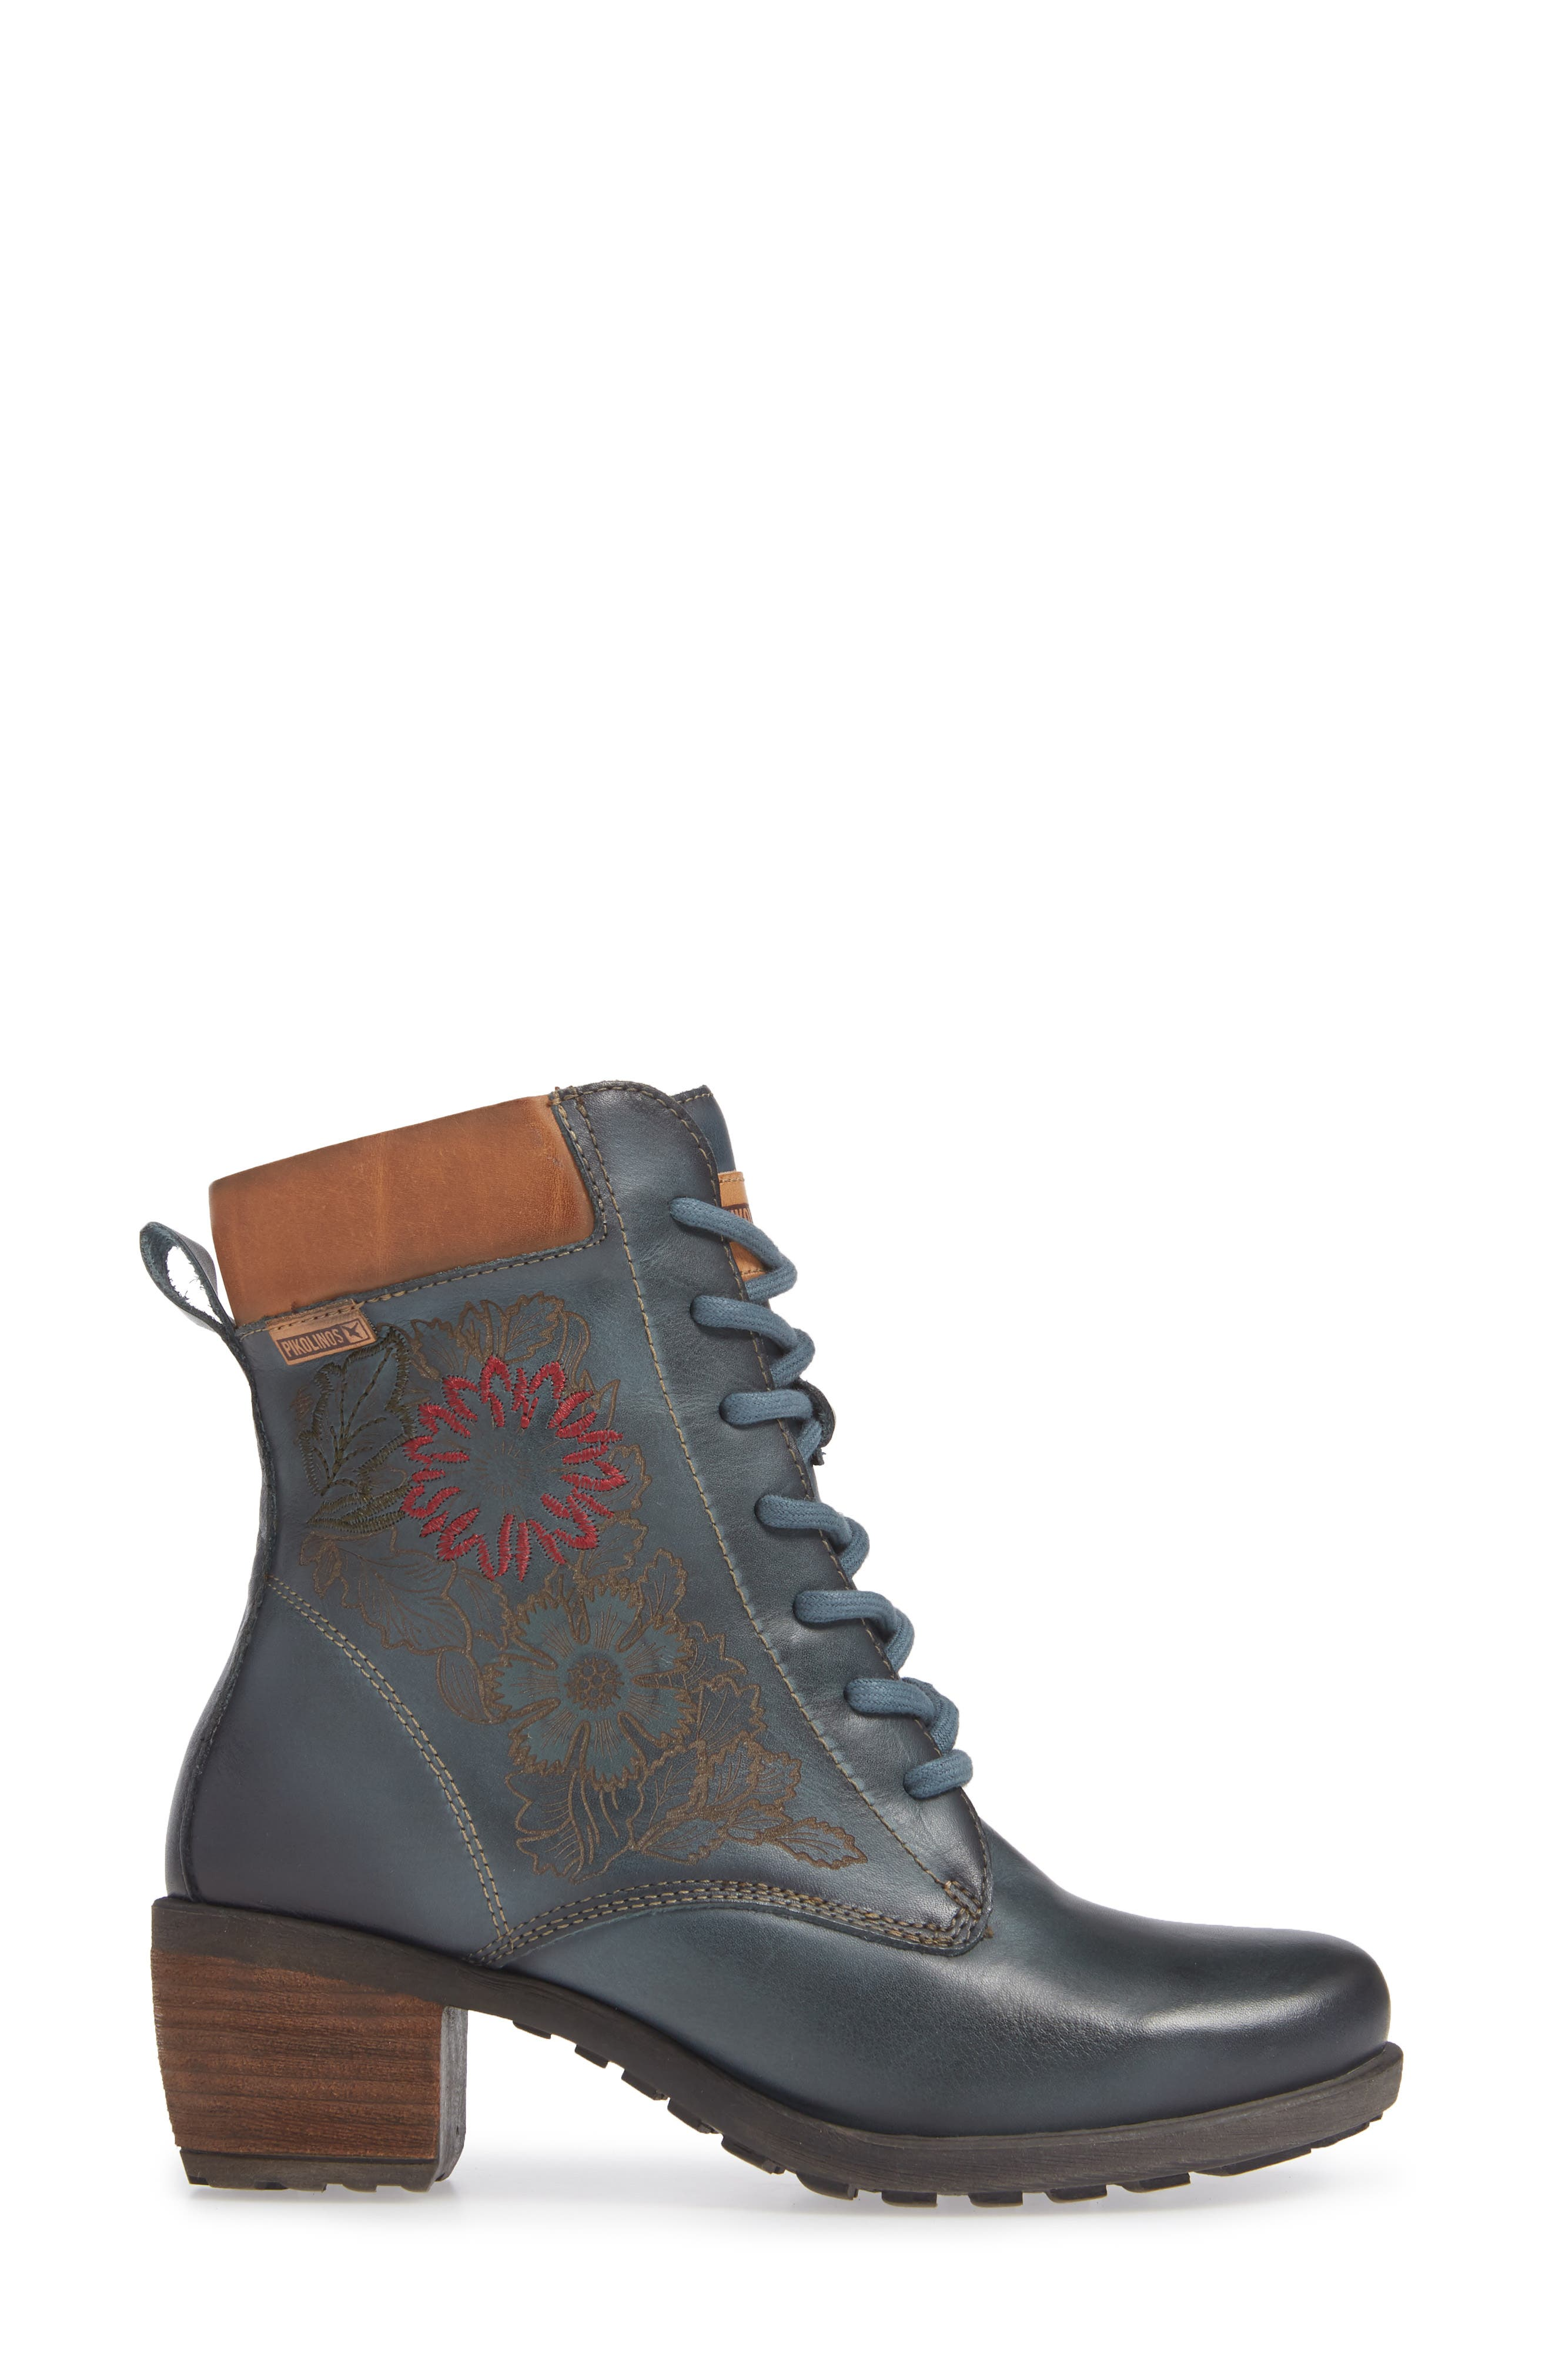 Le Mans Embroidered Lace-Up Bootie,                             Alternate thumbnail 3, color,                             OCEAN LEATHER